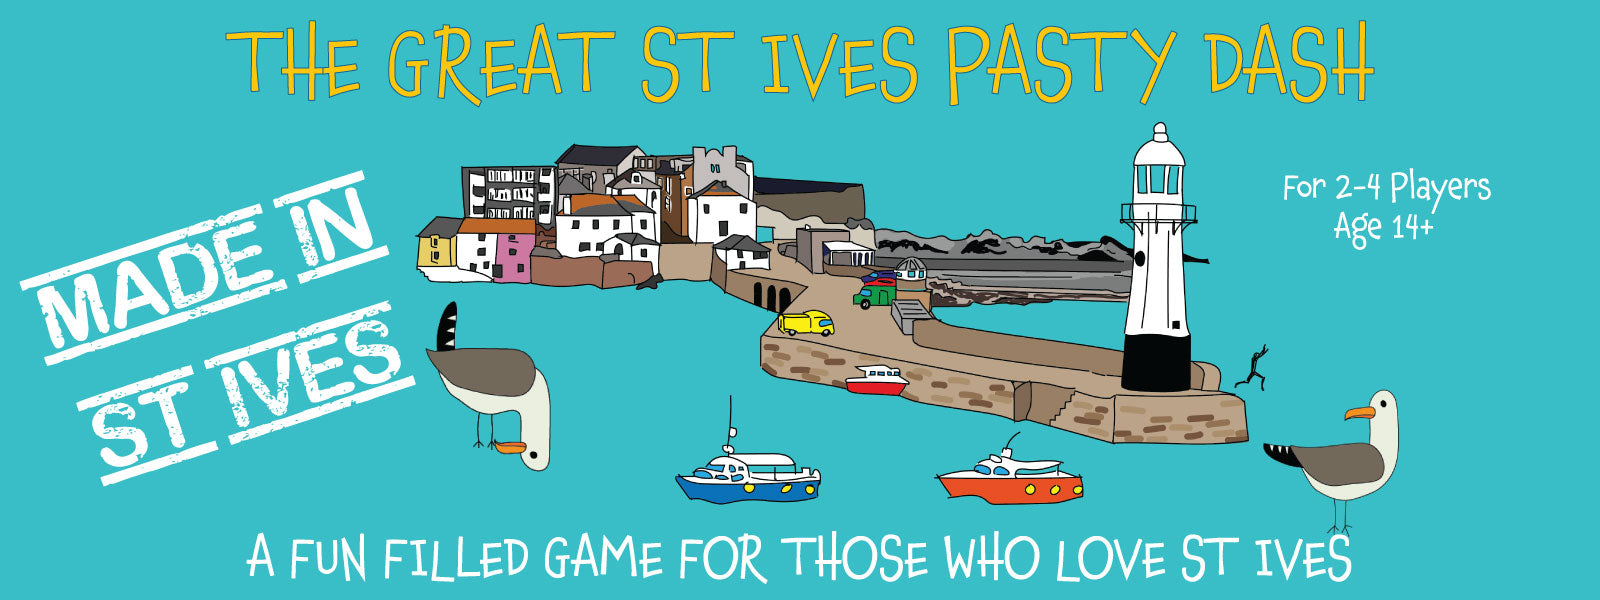 How To Play The Great St Ives Pasty Dash Game